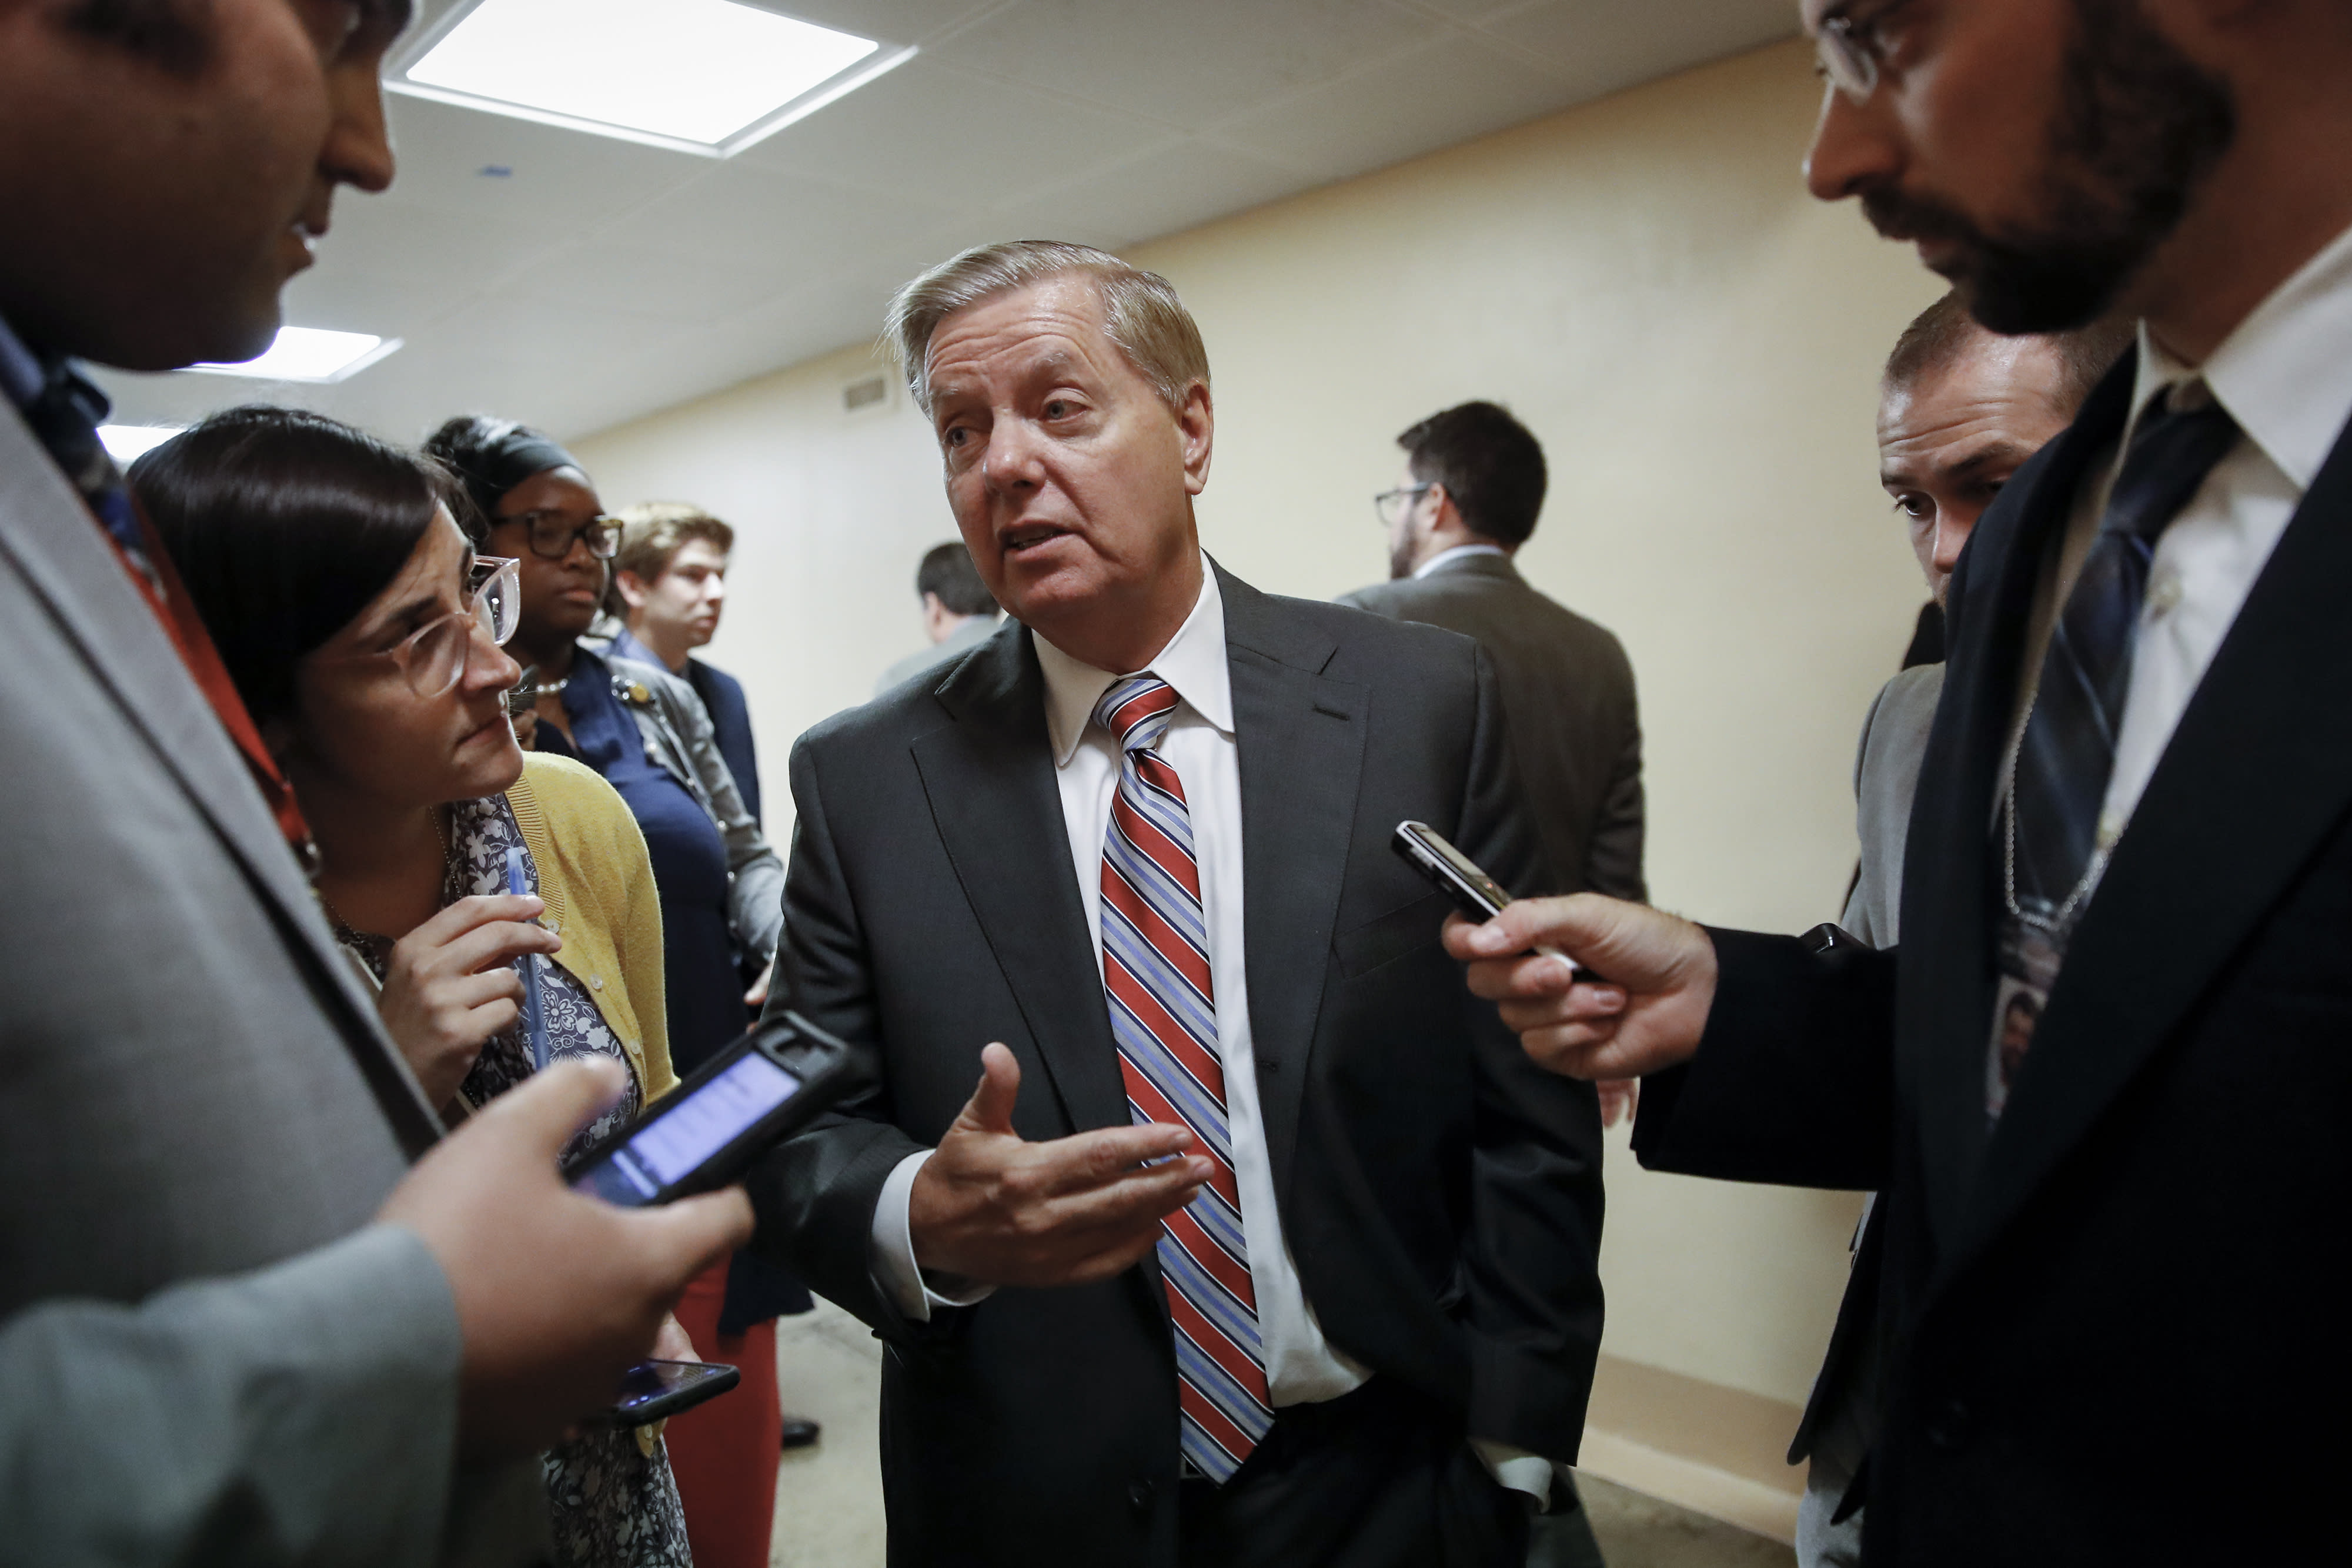 Senate Judiciary Committee Chairman Lindsey Graham, R-S.C., talks to reporters on his way to the Senate chamber for votes on federal judges as a massive budget pact between House Speaker Nancy Pelosi and President Donald Trump is facing a key vote in the GOP-held Senate later, at the Capitol in Washington, Wednesday, July 31, 2019. (AP Photo/J. Scott Applewhite)